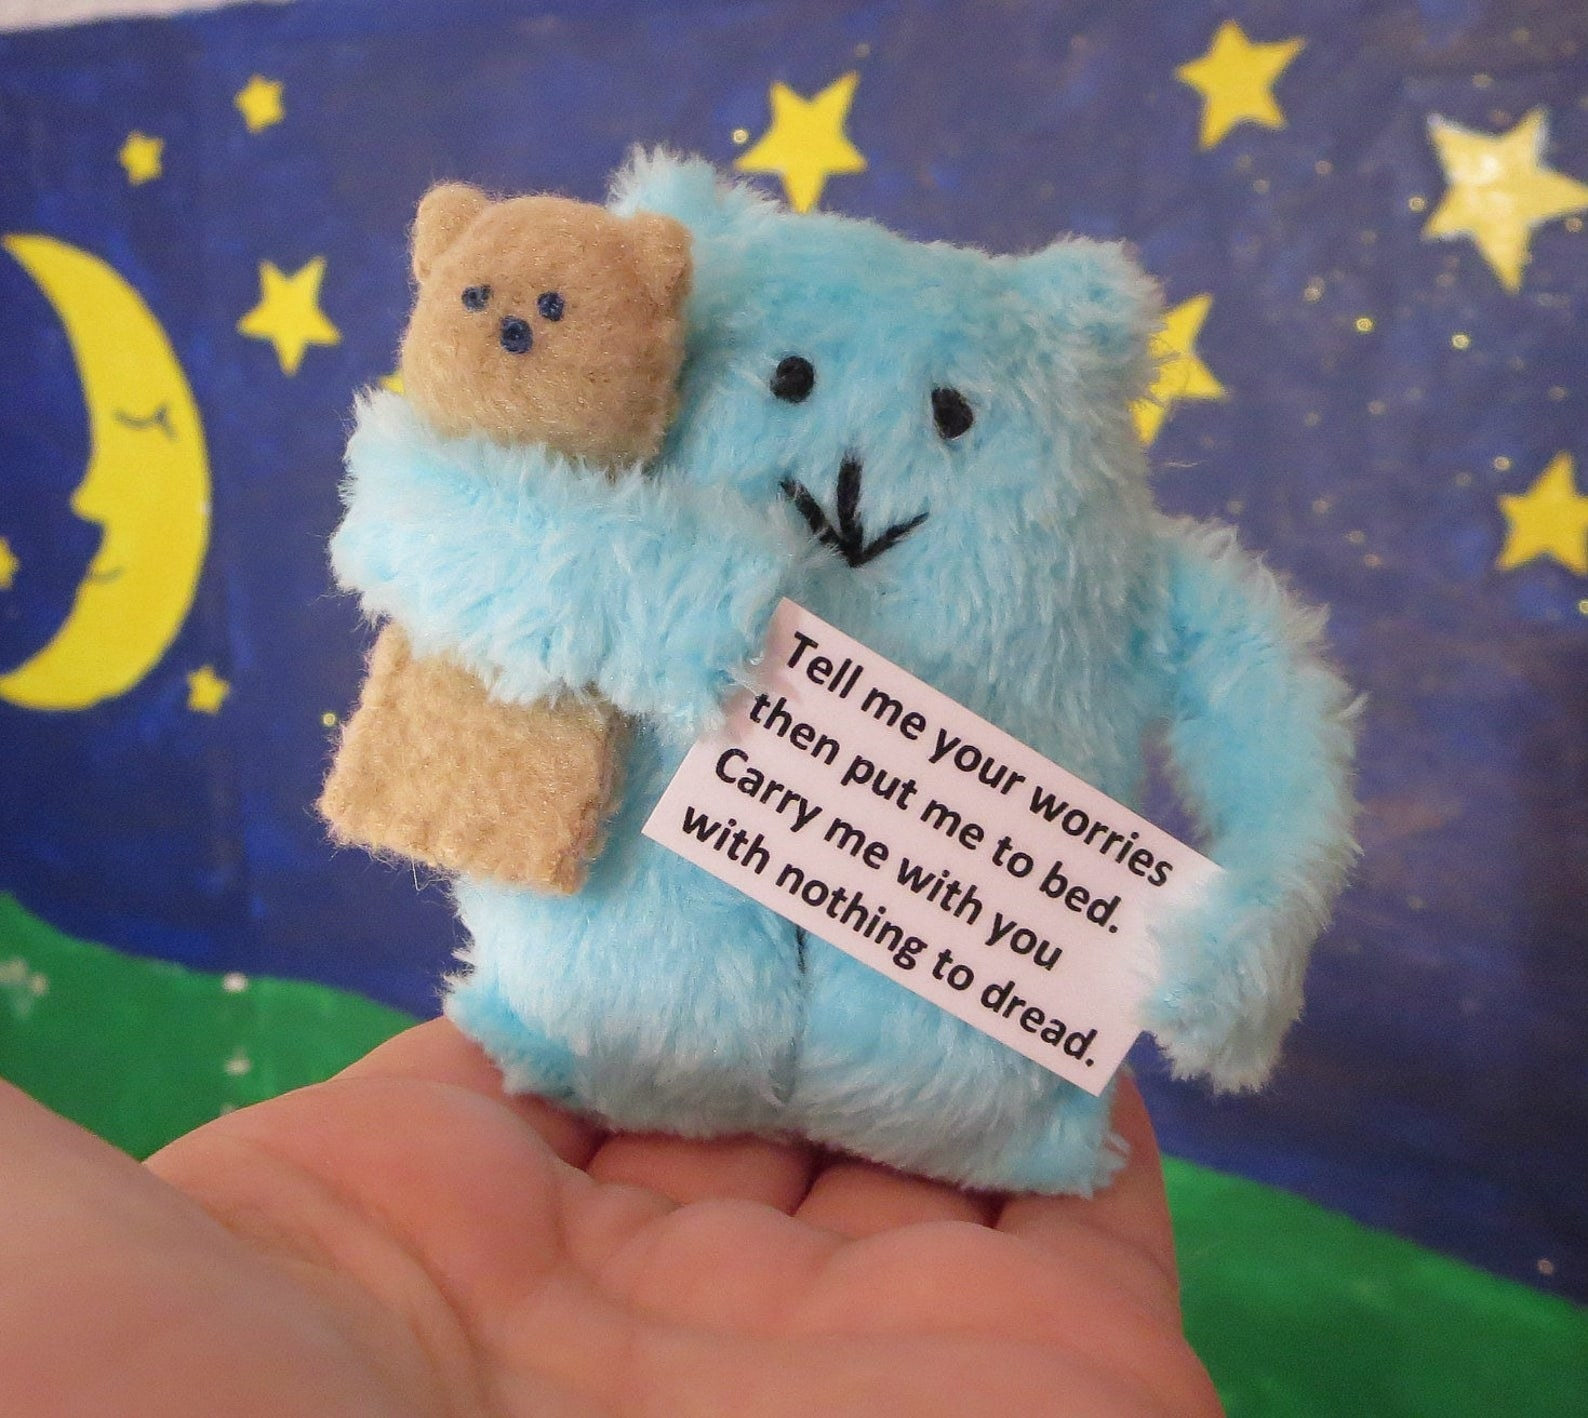 A blue monster holding a teddy bear with a poem in its hand